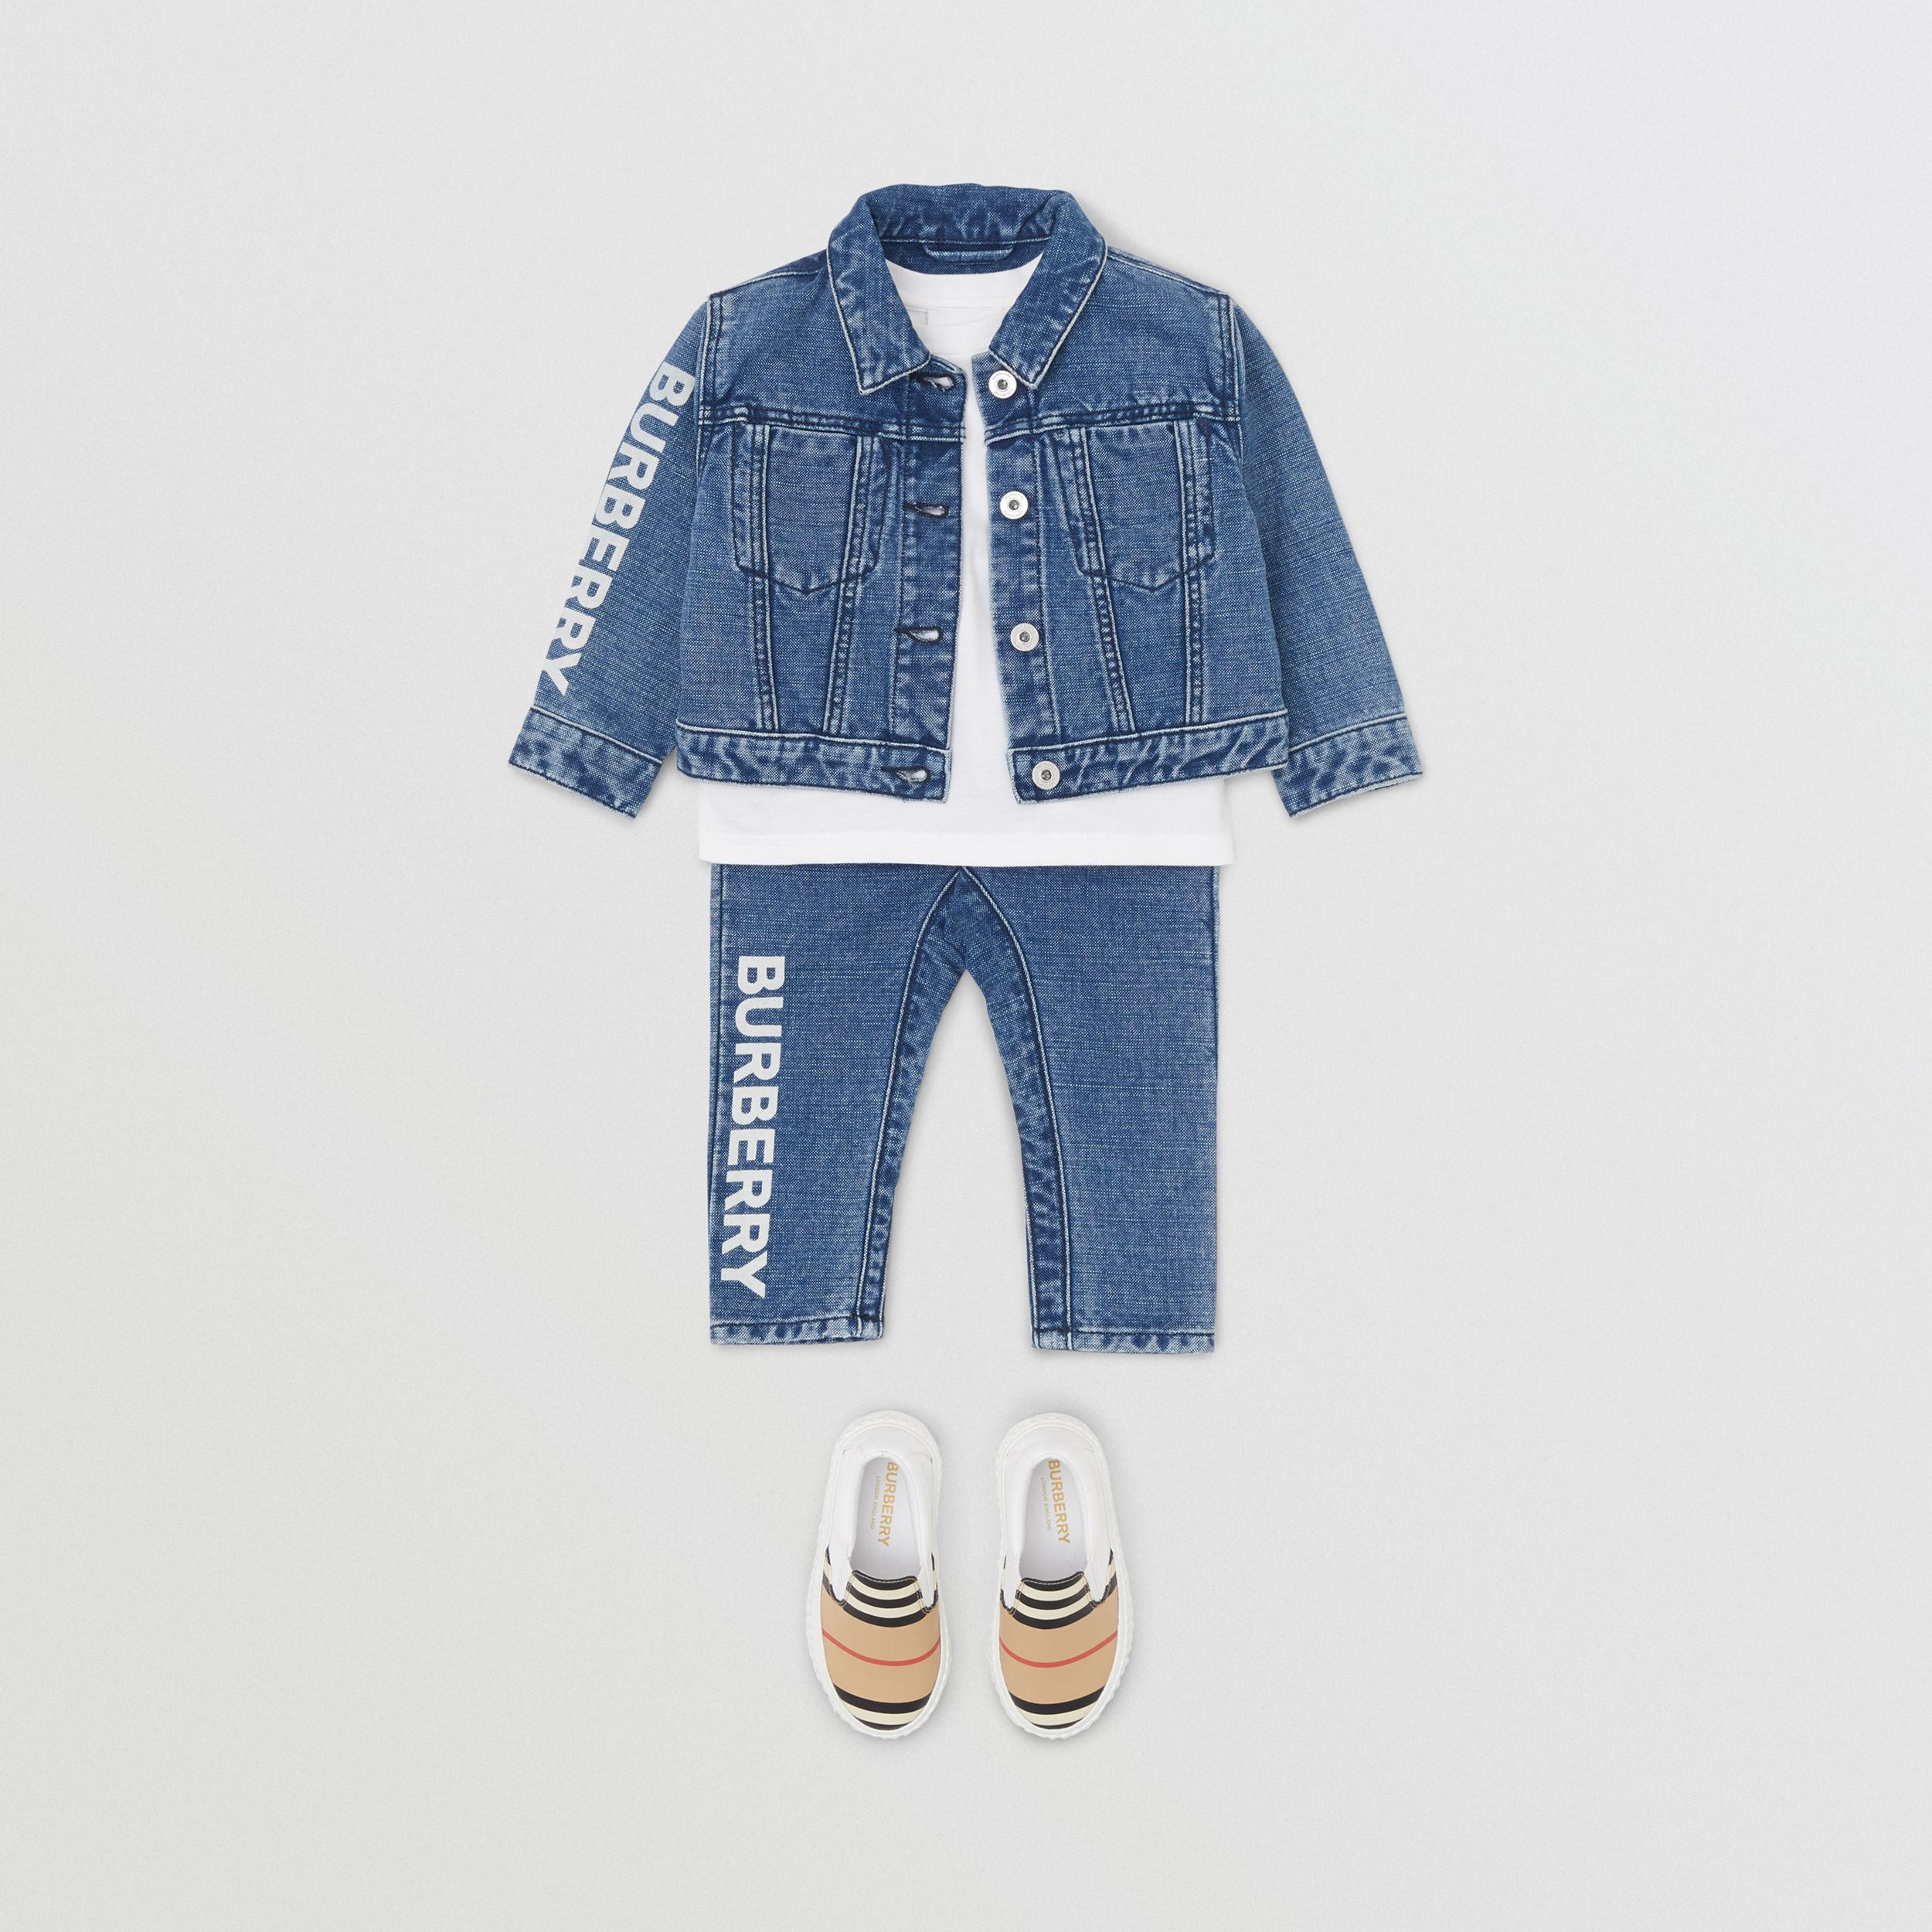 Logo Print Japanese Denim Jeans in Indigo - Children | Burberry - 3